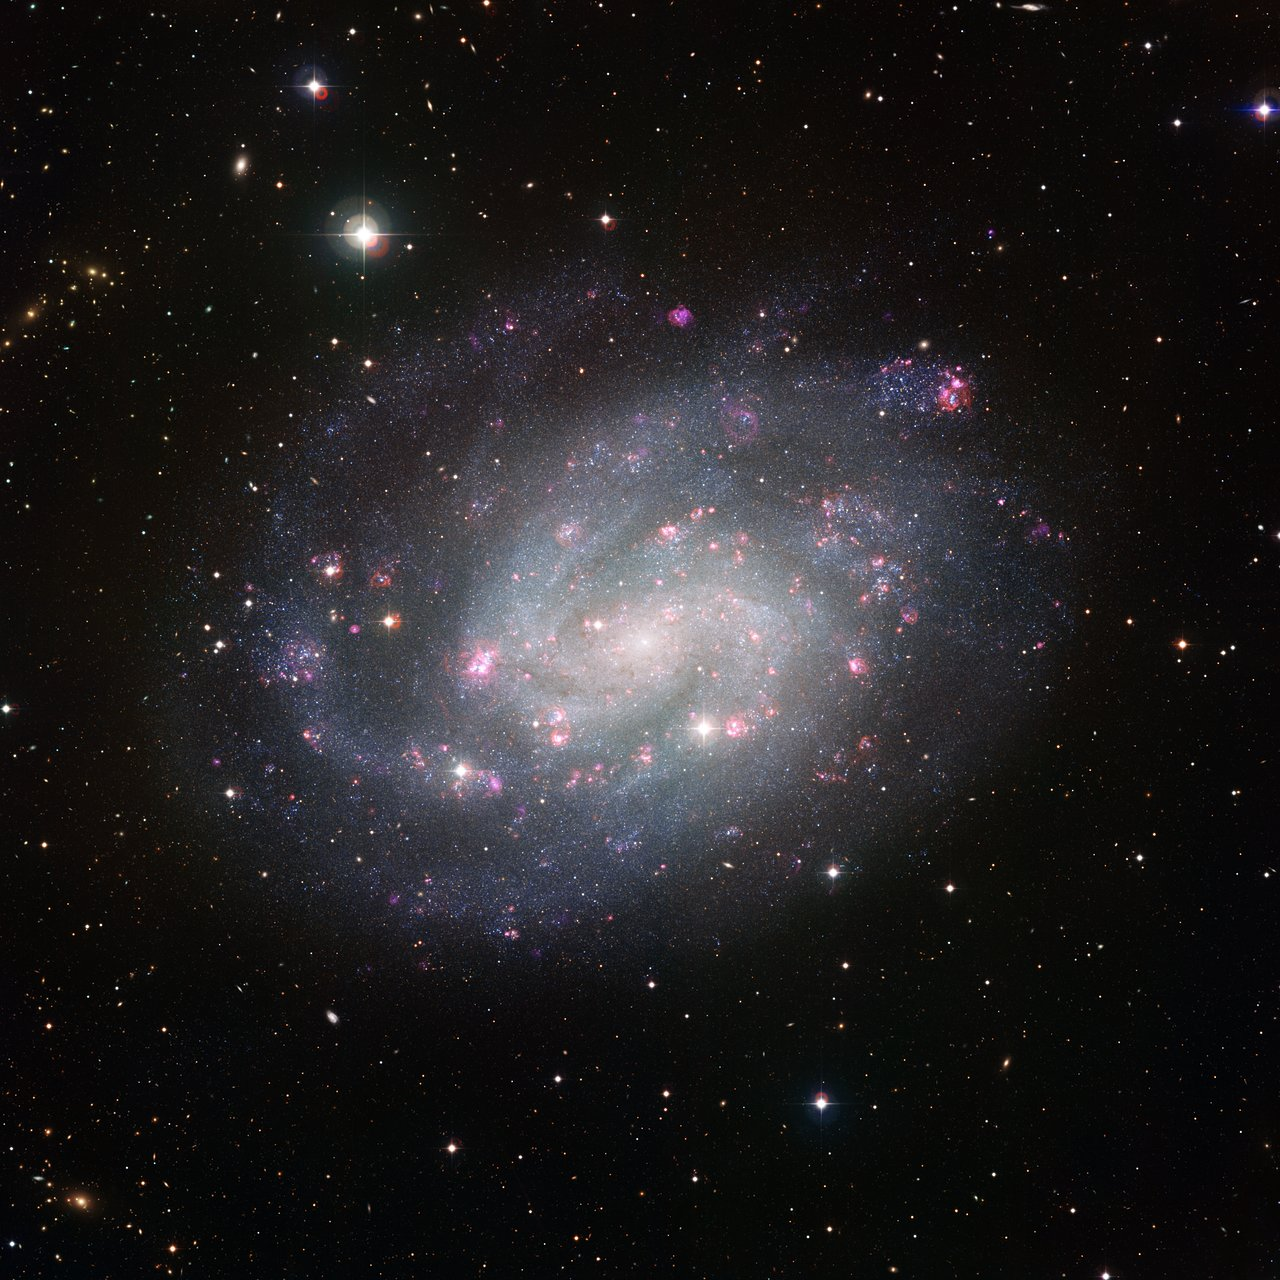 Mounted image 168: Wide Field Imager view of the southern spiral NGC 300